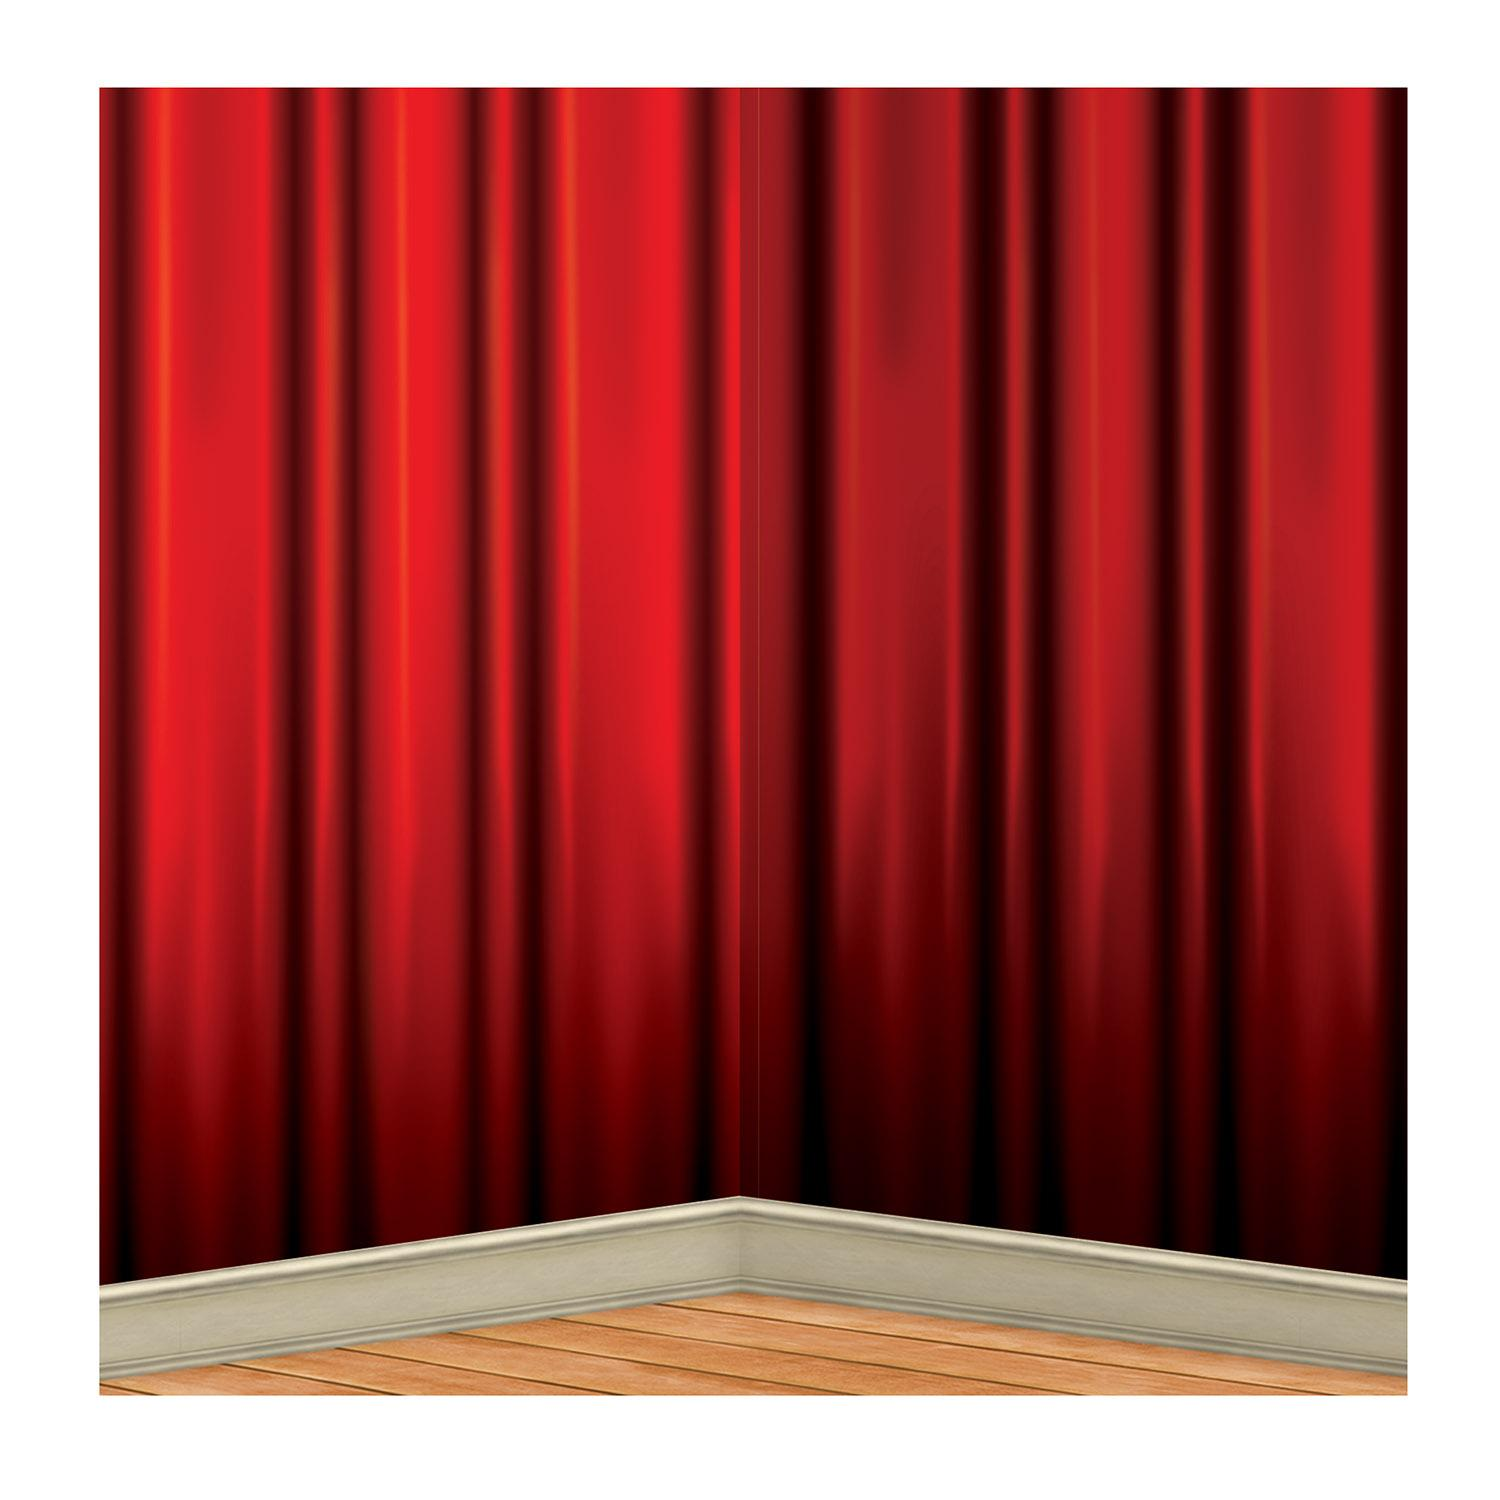 Set of 6 Red Hollywood Awards Night Curtain Backdrops 4' x 30'